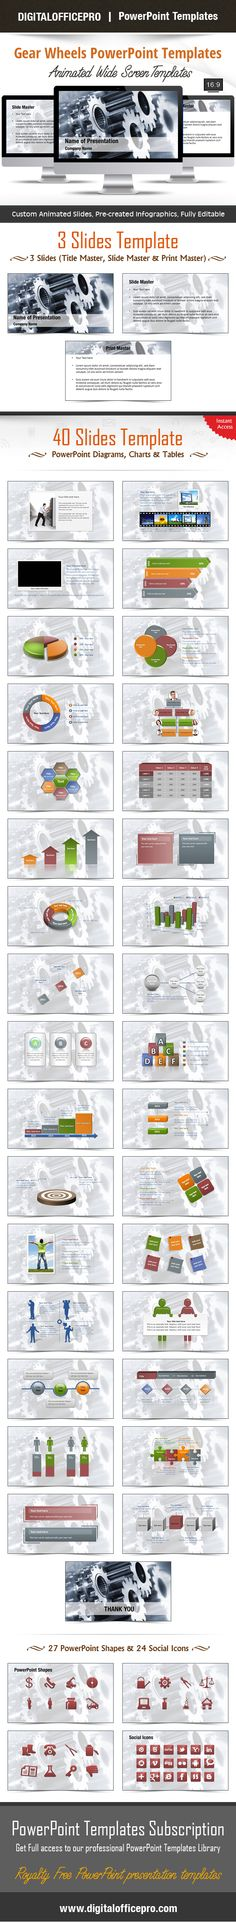 Impress and Engage your audience with Gear Wheels PowerPoint Template and Gear Wheels PowerPoint Backgrounds from DigitalOfficePro. Each template comes with a set of PowerPoint Diagrams, Charts & Shapes and are available for instant download.